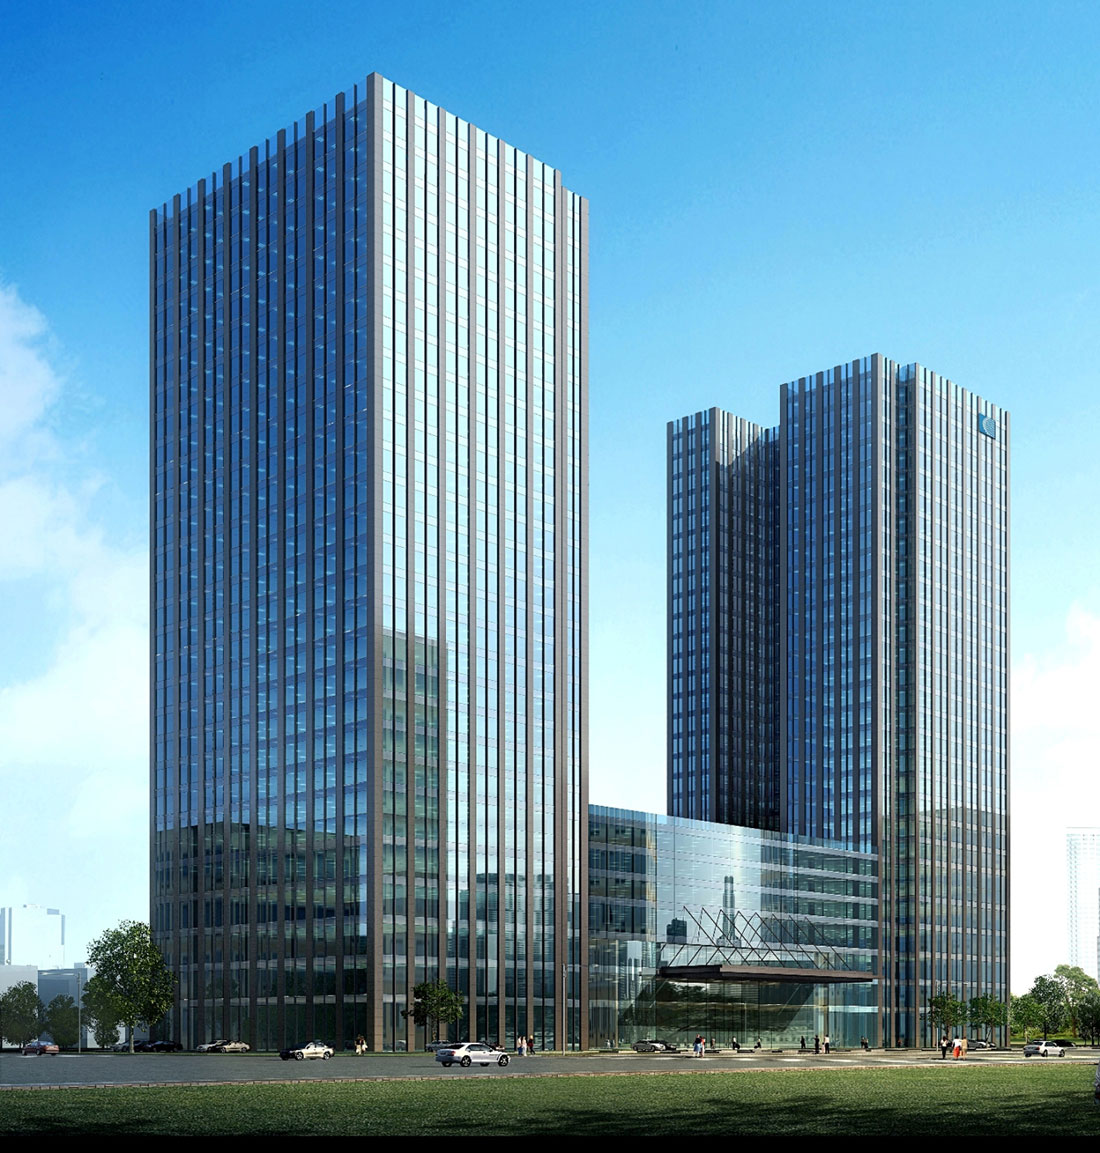 Swissôtel Hotels & Resorts Expands In China With A New. Quality Afonso Pena Hotel. Arlana Guest House. Imperial Hotel. Aston At Kuningan Suites Hotel. Vizit Hotel. Hotel Club Alle Dune. Whispering Palms Inn. Ozpark Hotel